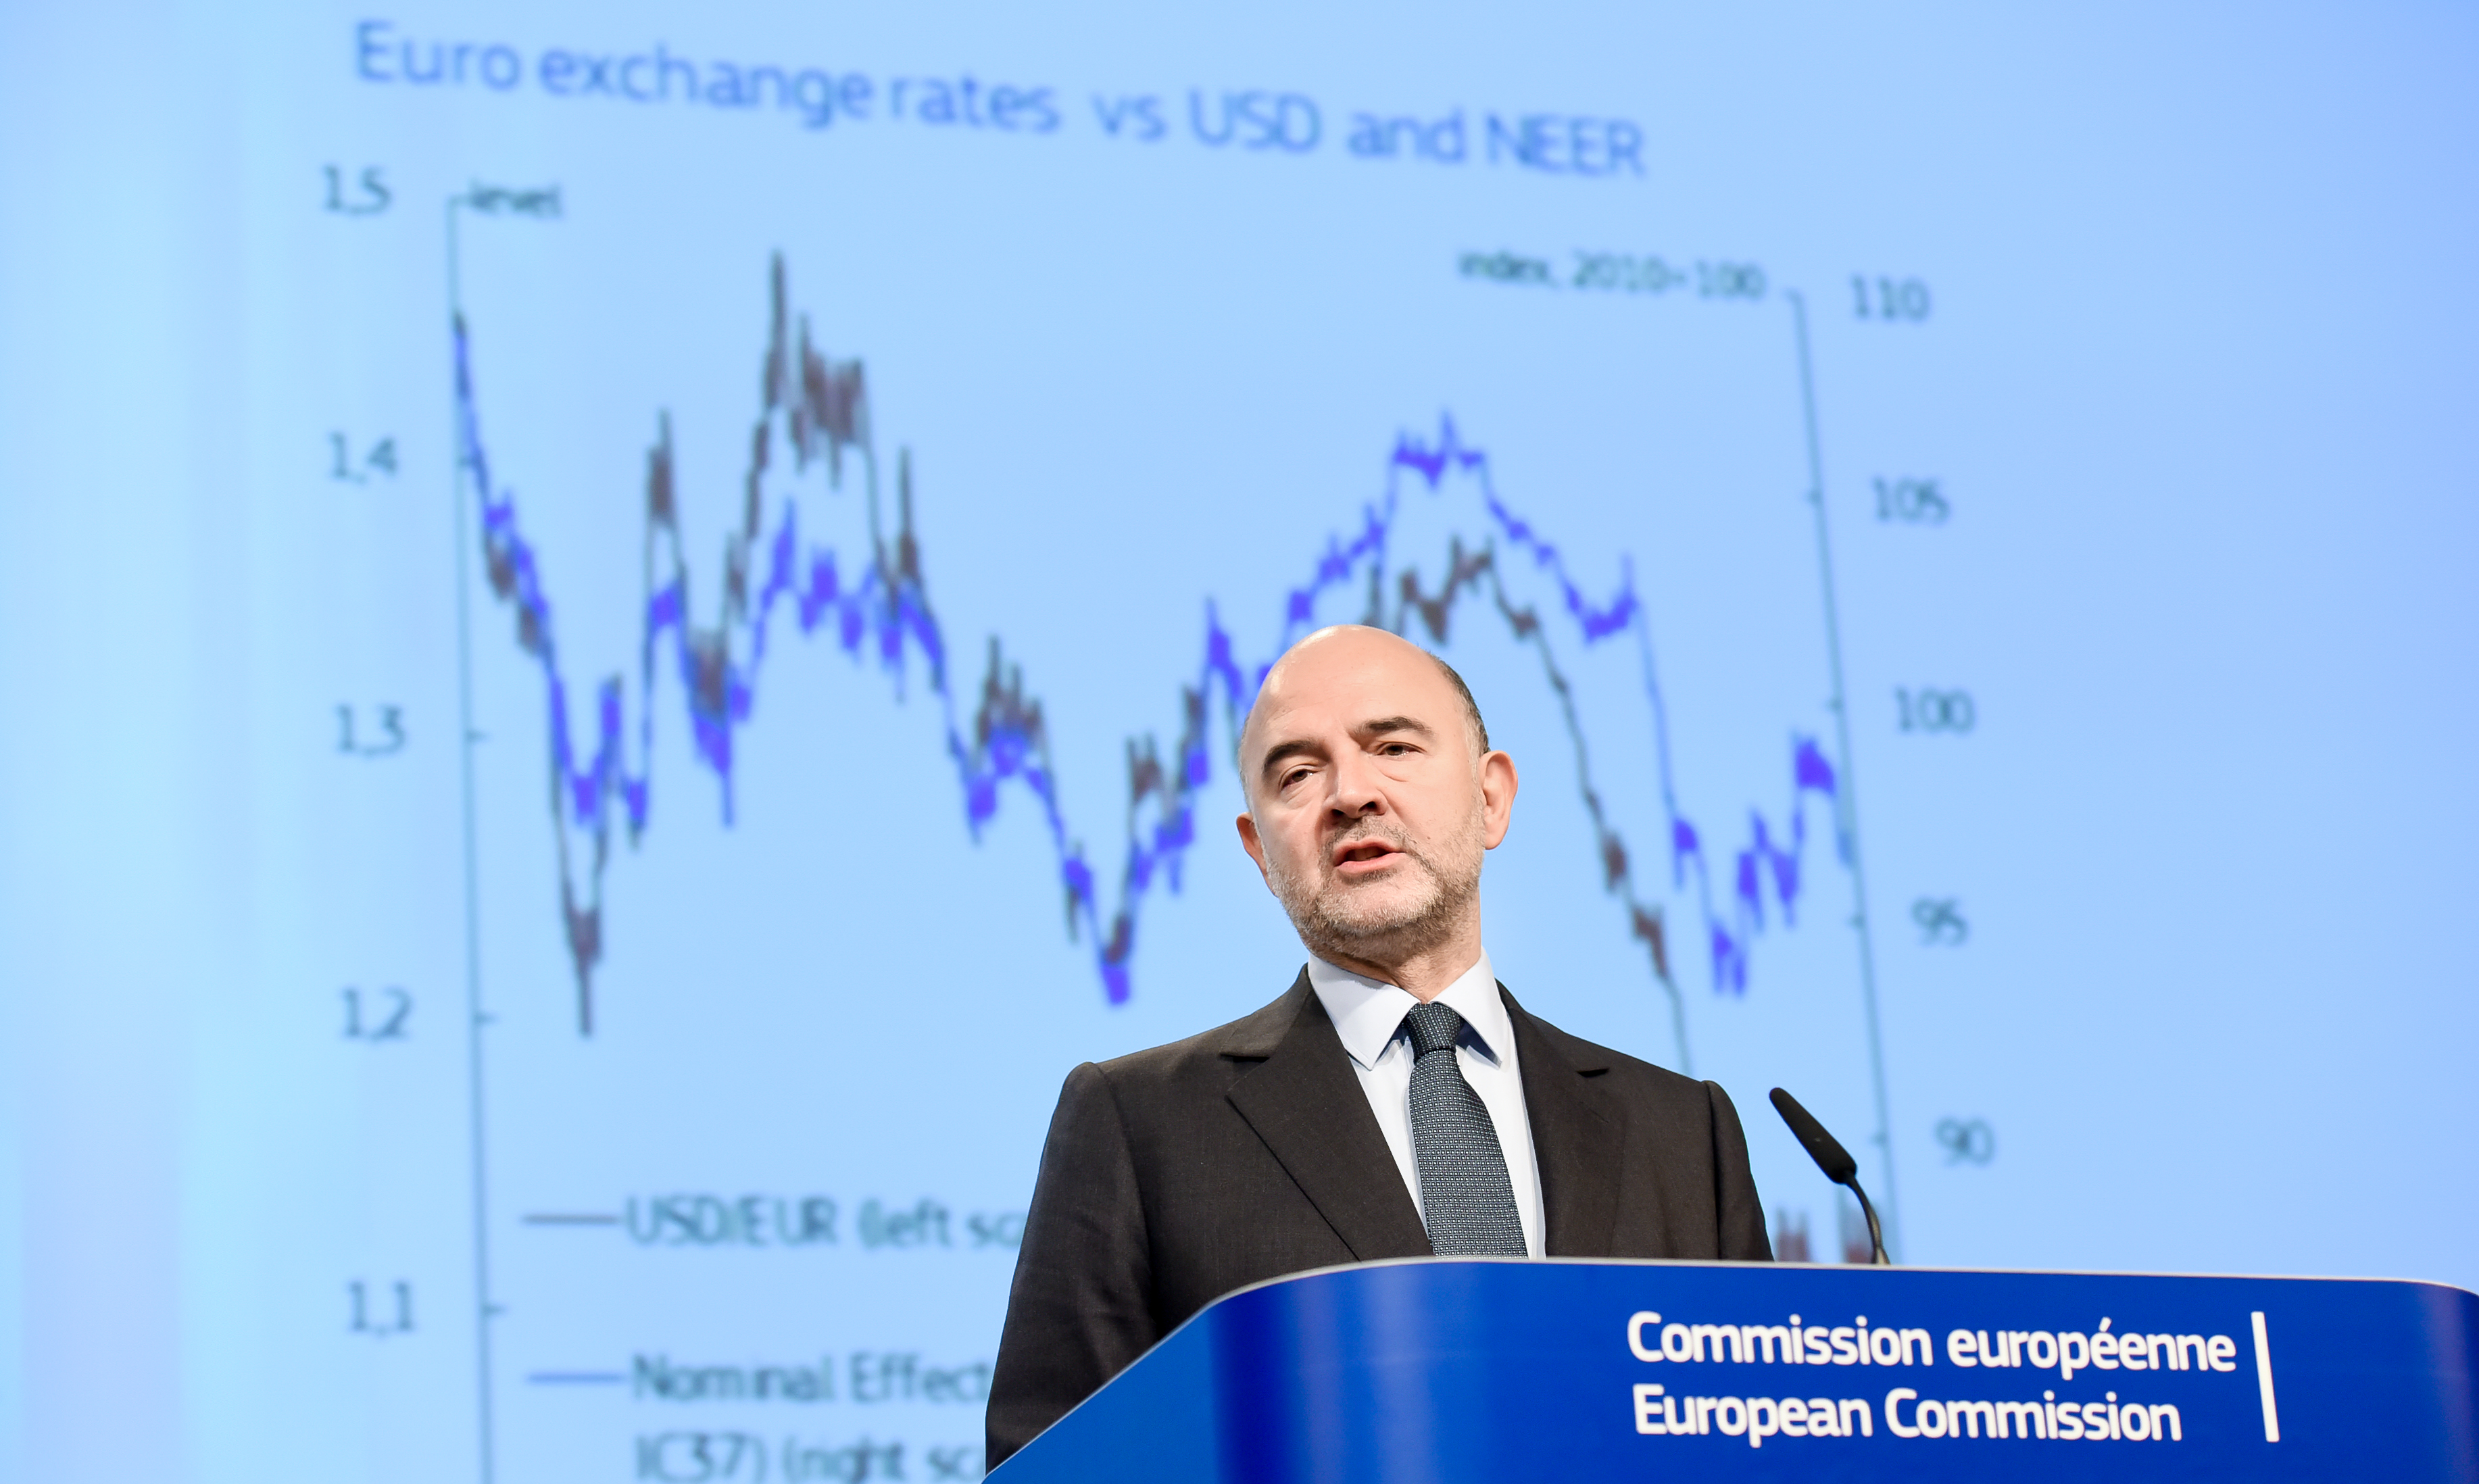 Moscovici said EU counties should continue to reform economies (Photo